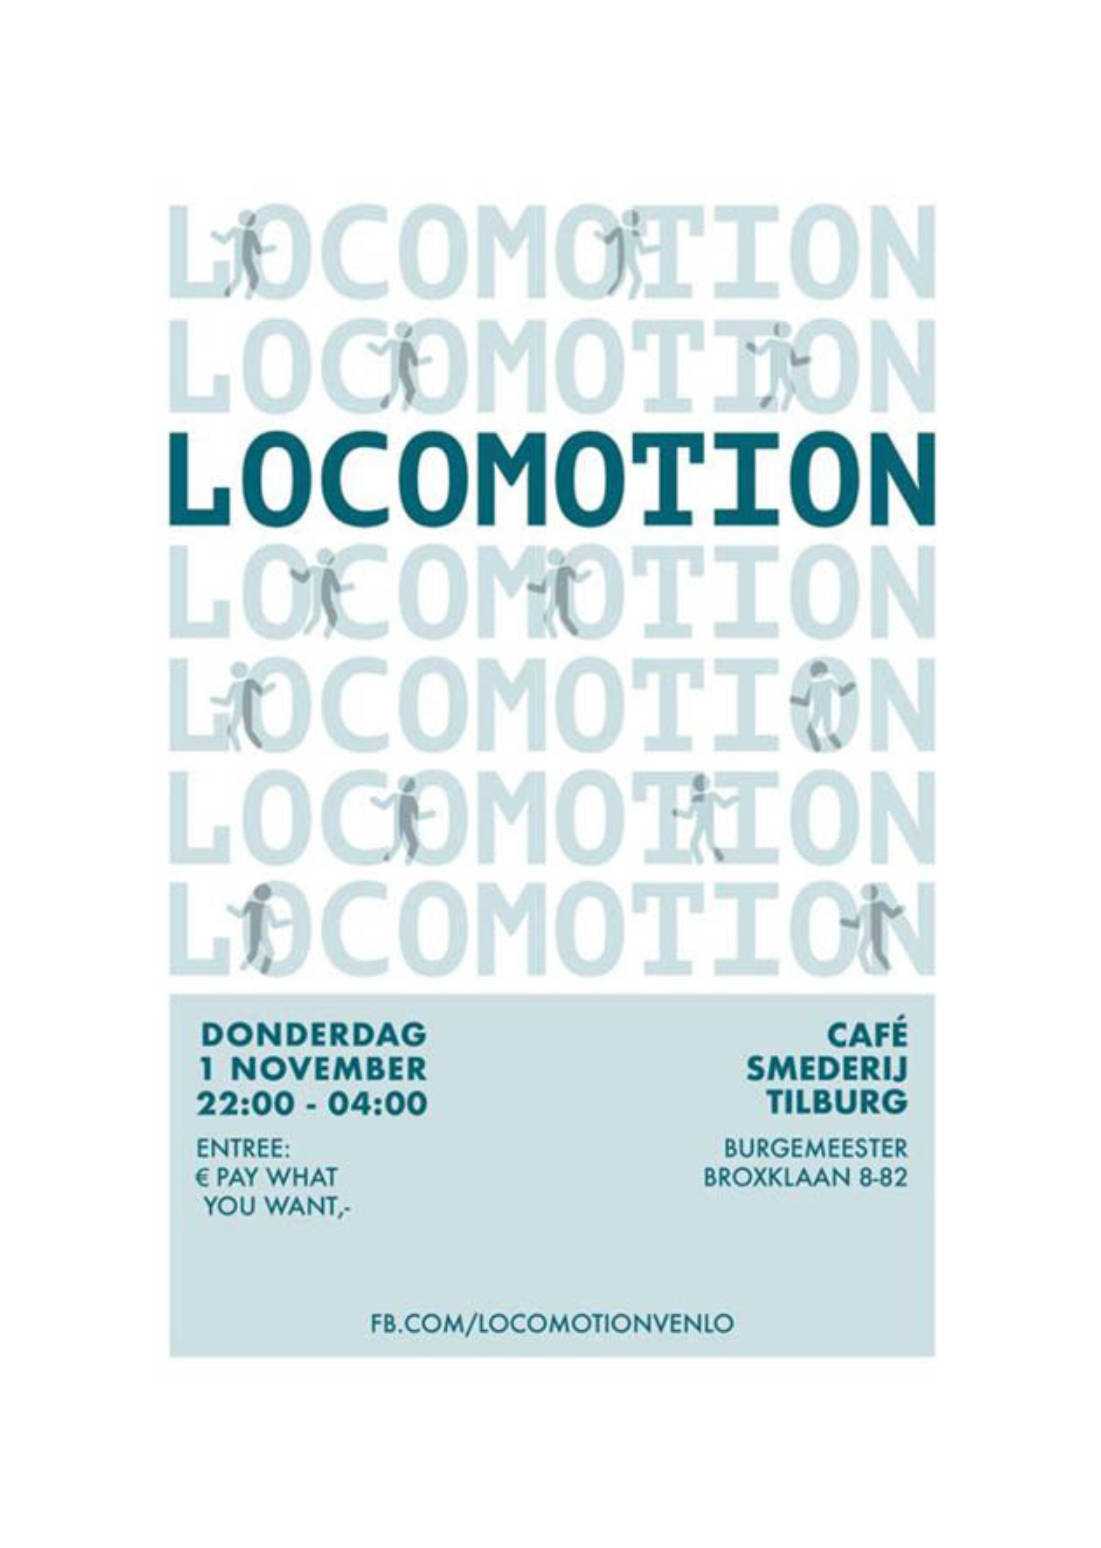 Locomotion x Club Smederij